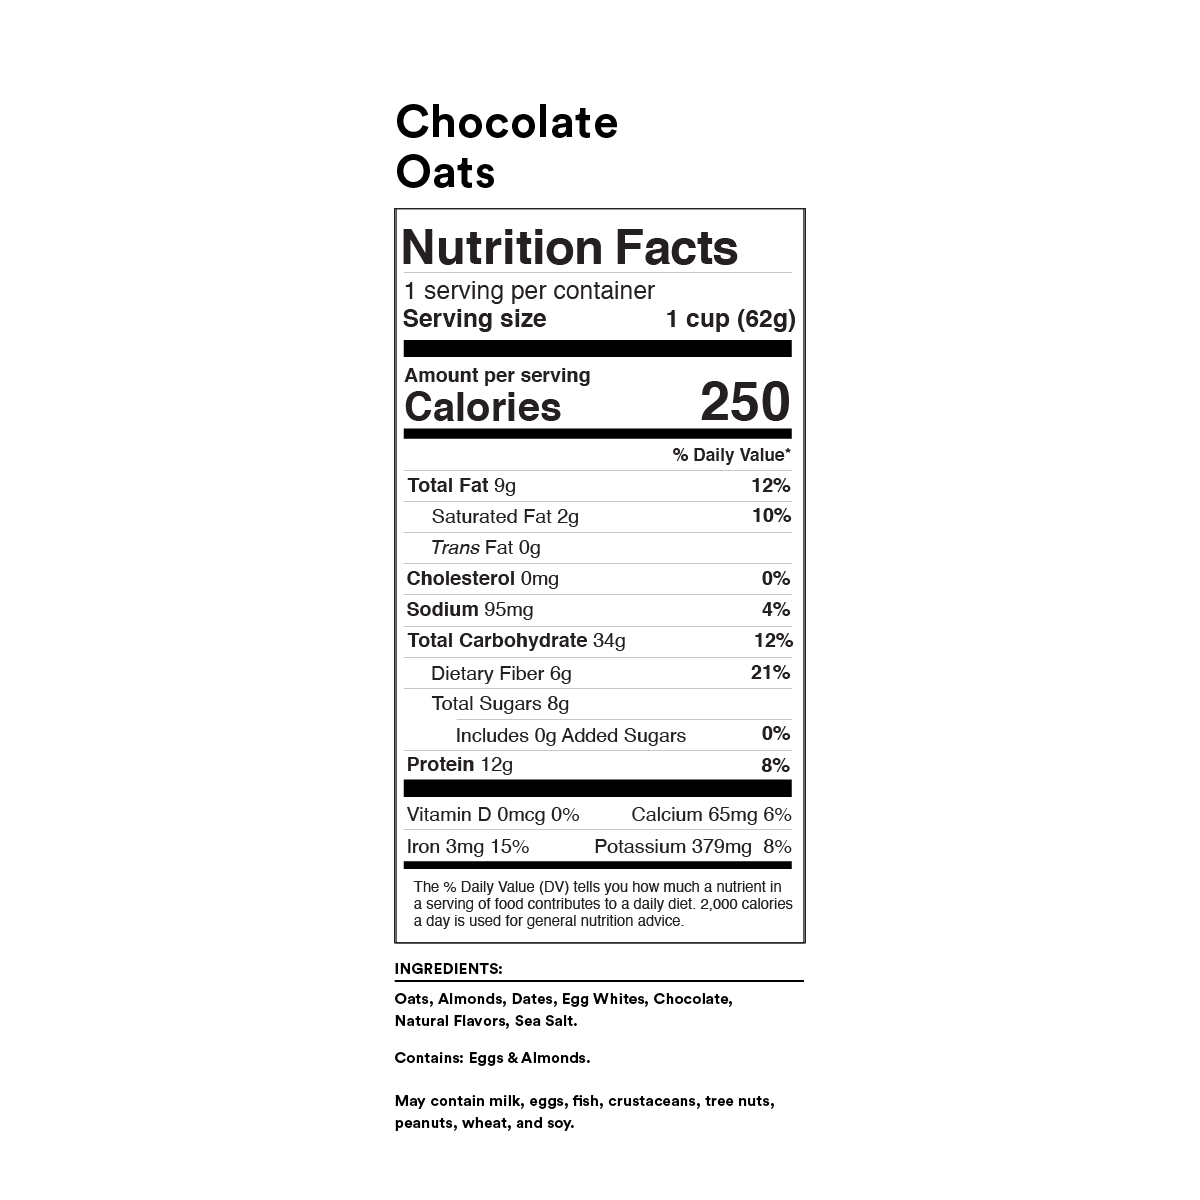 Chocolate Oats Nutrition Facts